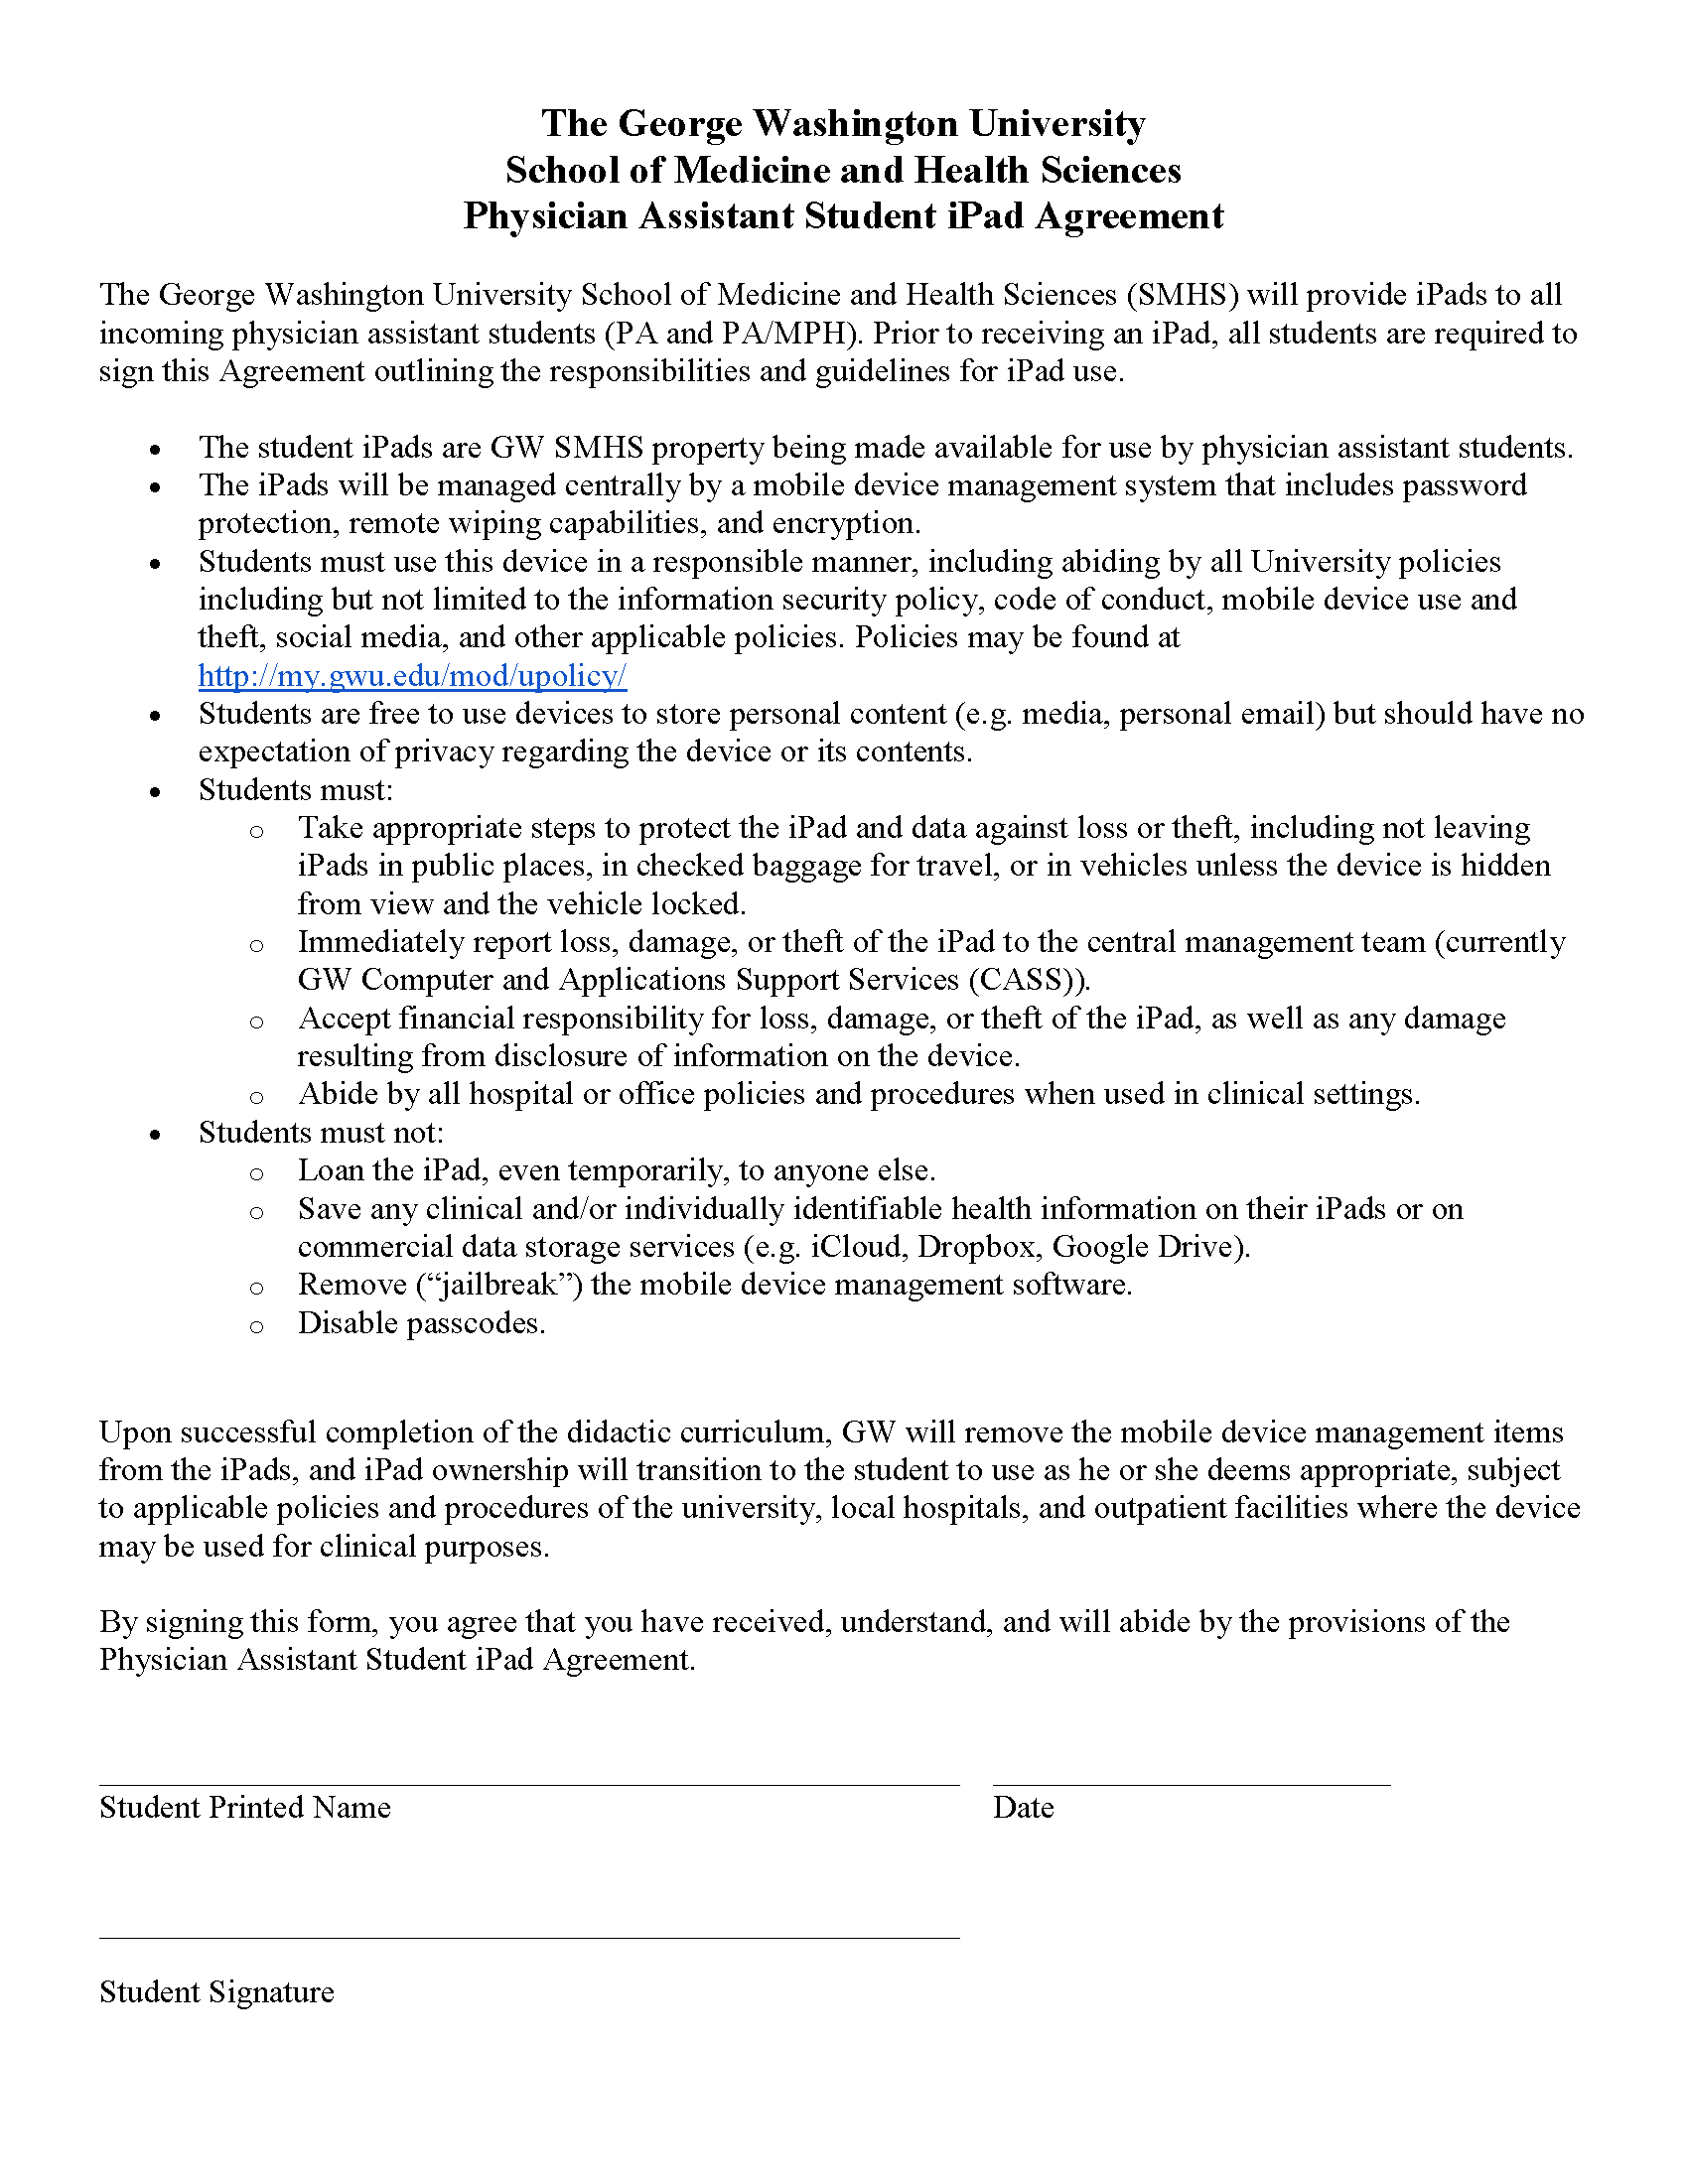 Ipad Student Agreement Ipads For Pa Students Research Guides At